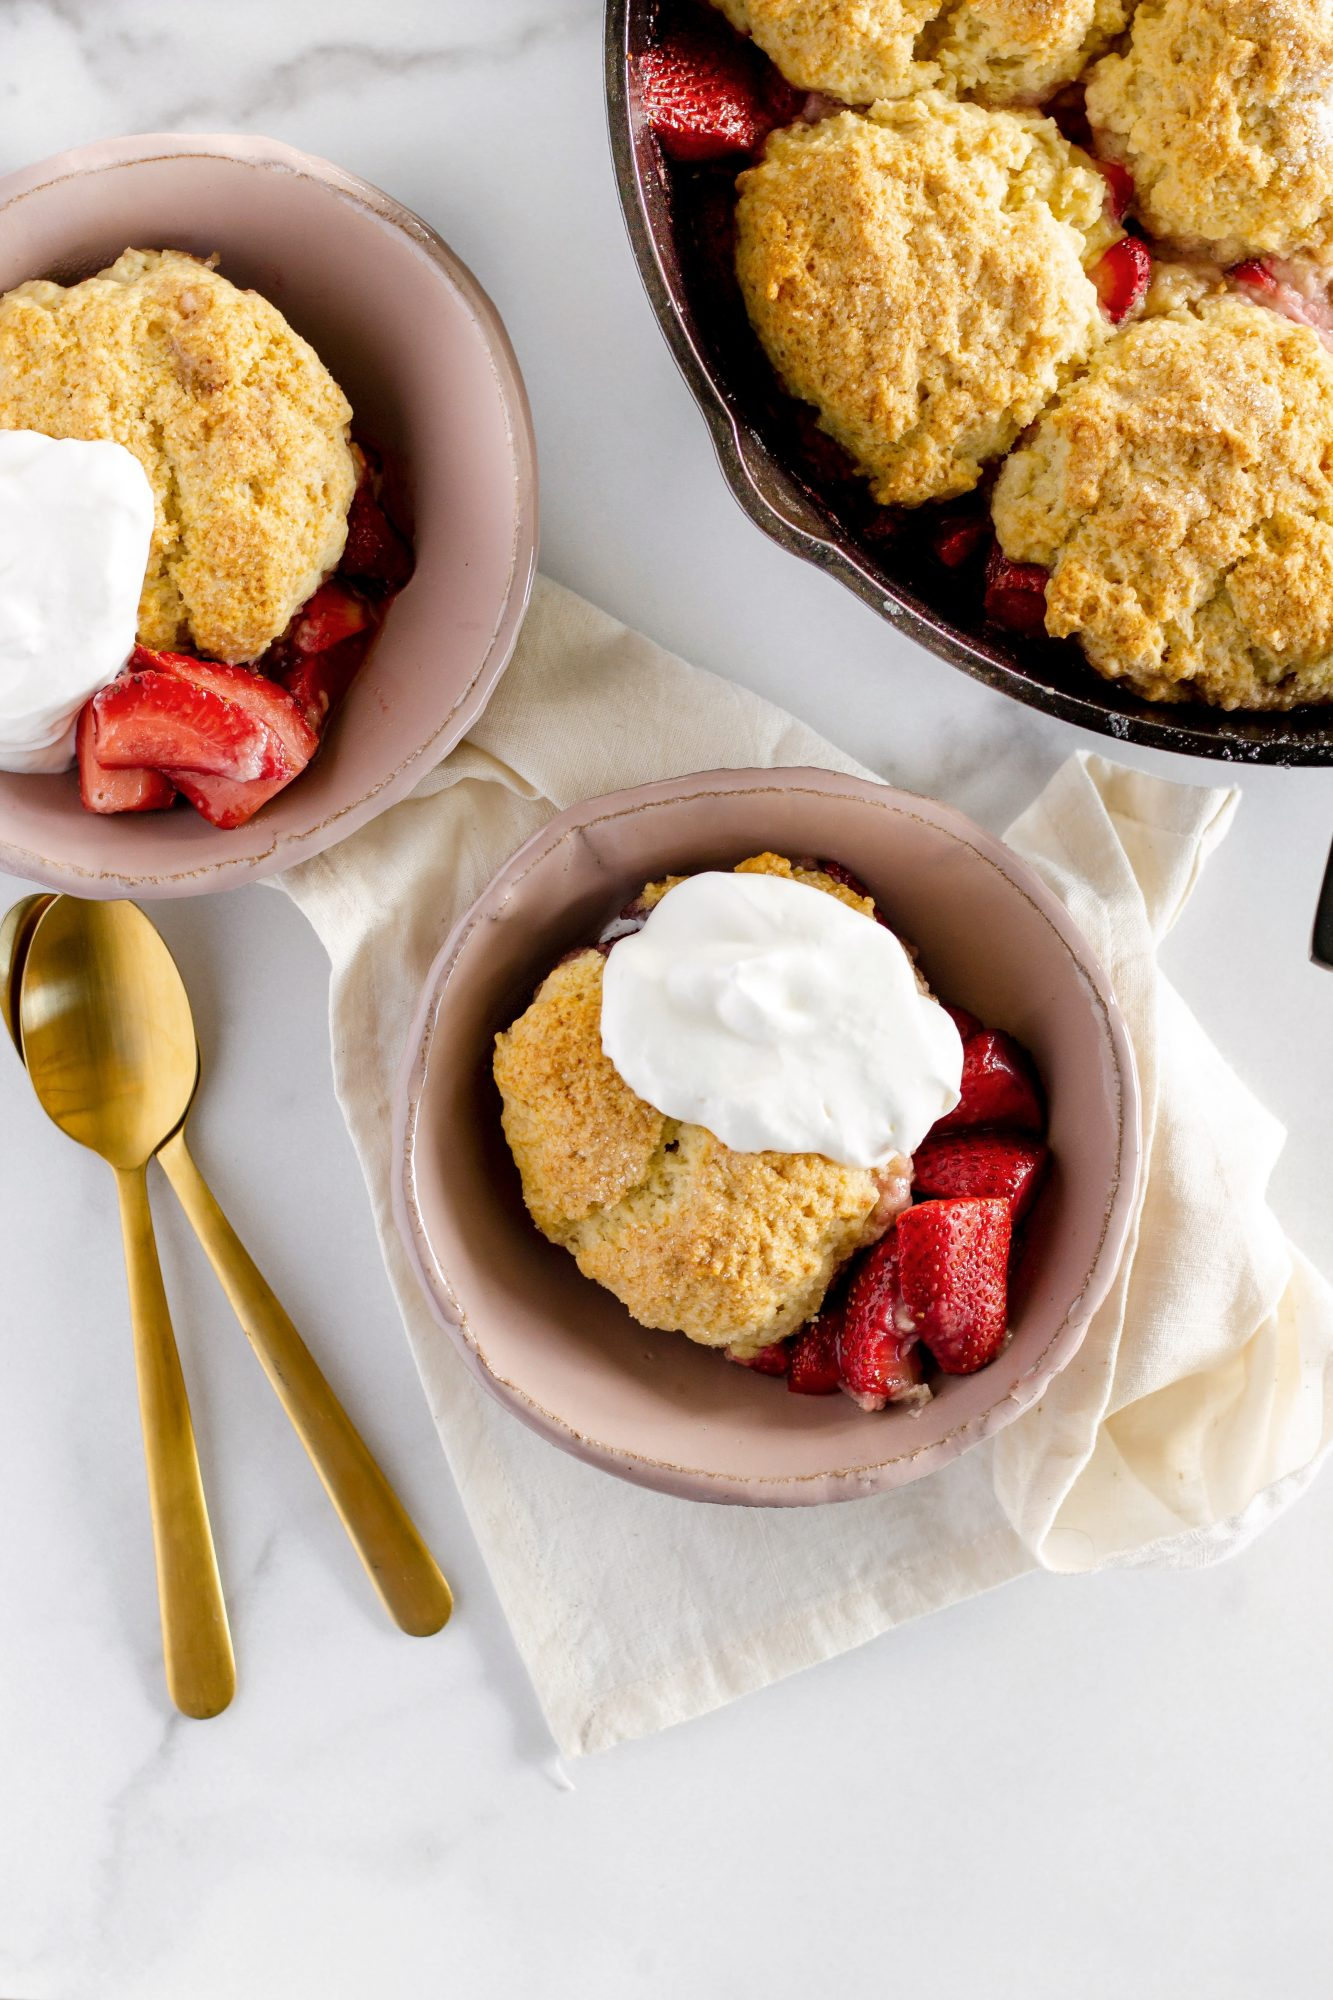 strawberry shortcake skillet with whipped cream